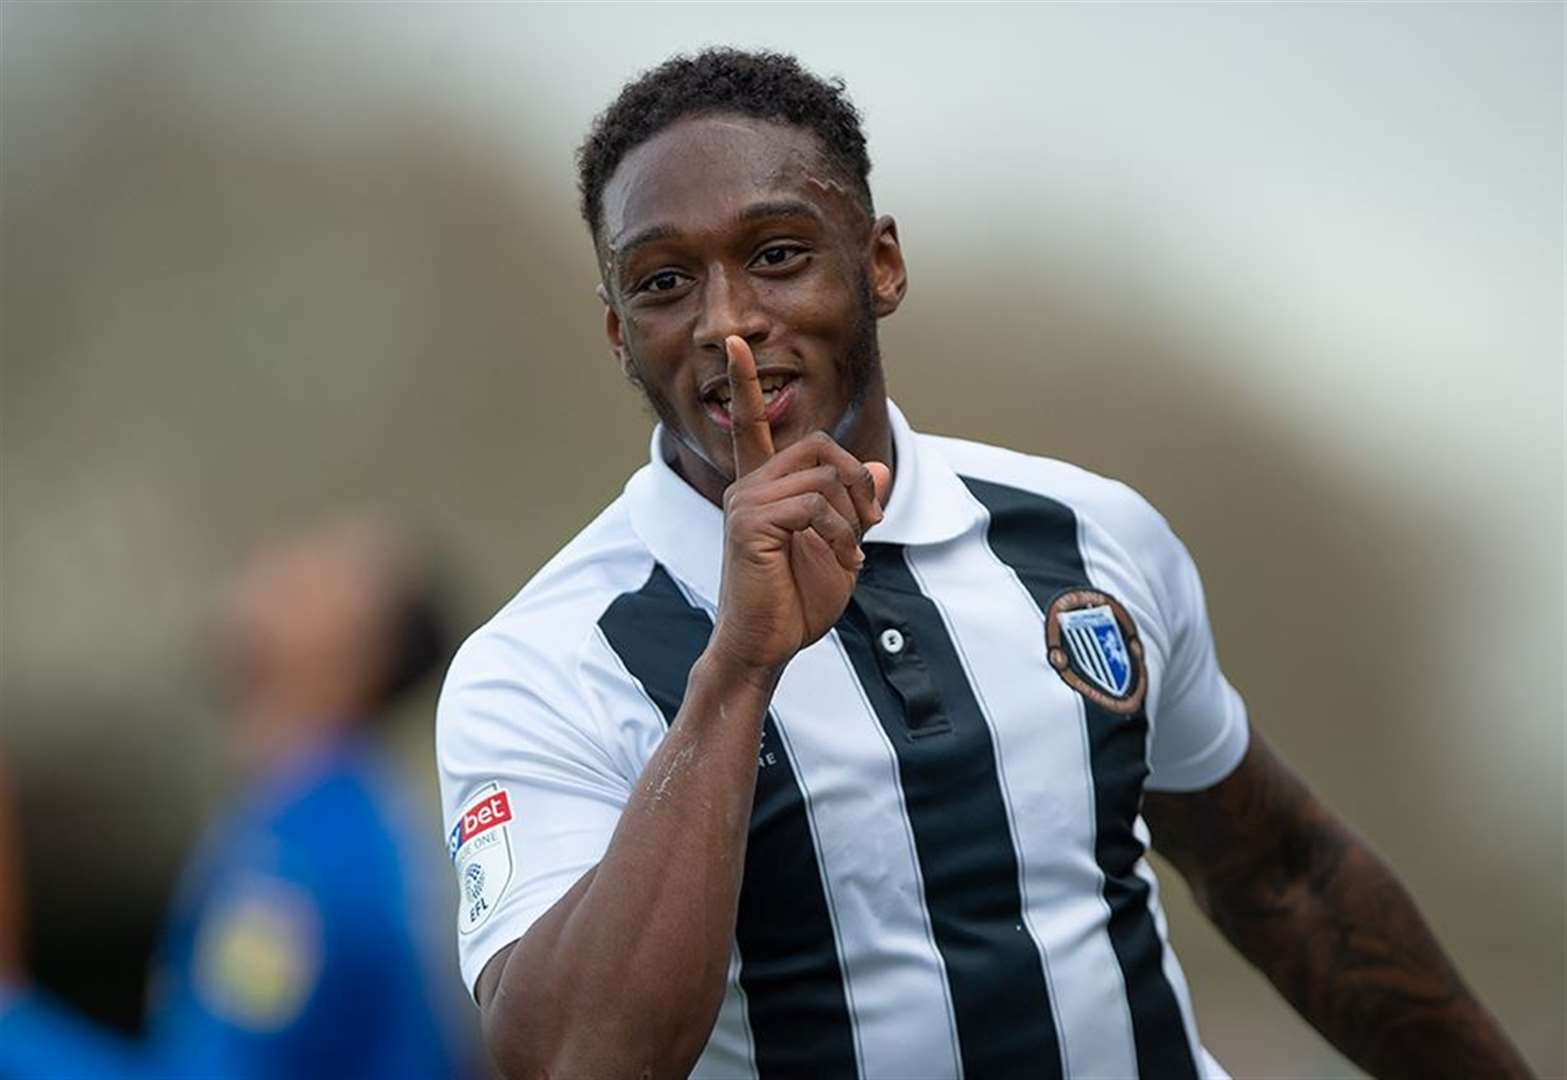 Report: Gills ease worries